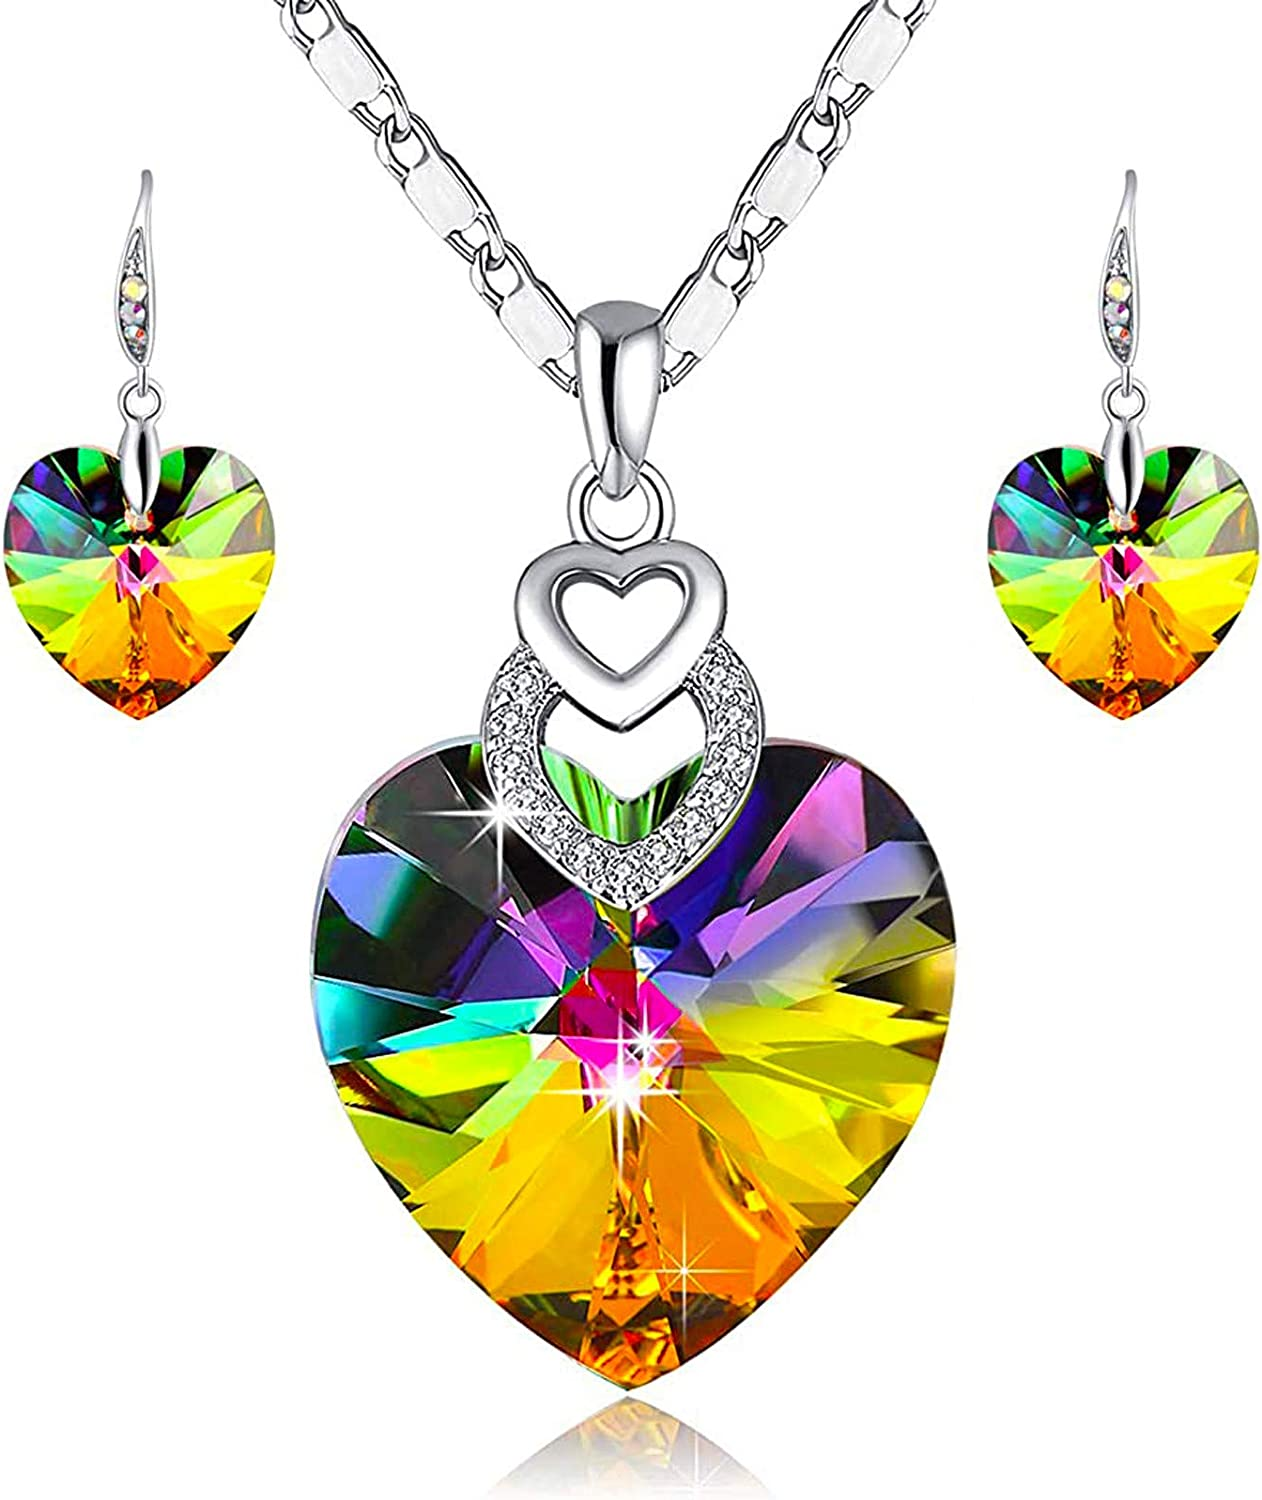 PLATO H 3 Heart Jewelry Set Crystals for Max 85% OFF Christmas Wome Memphis Mall Gift